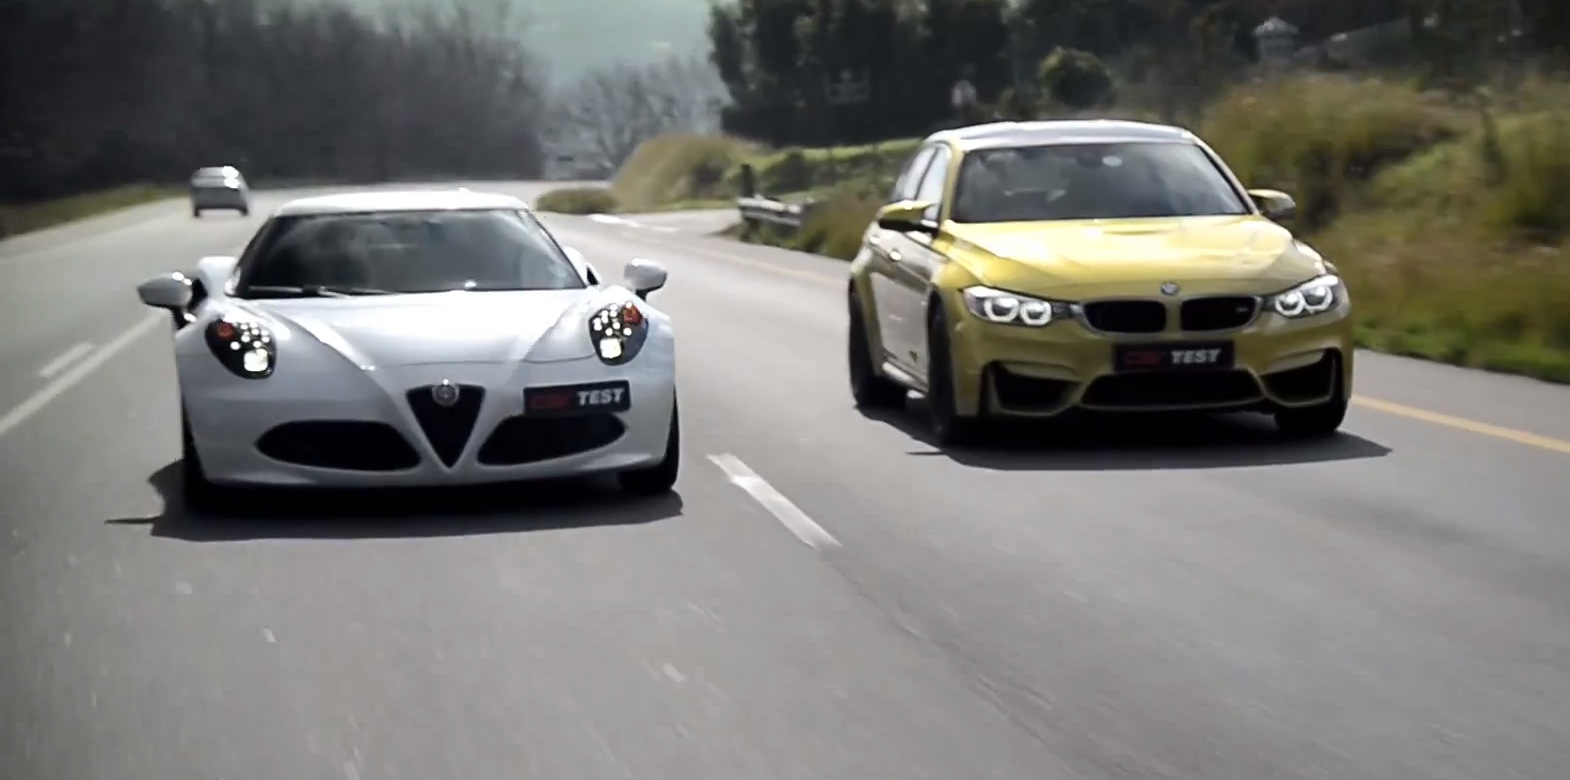 bmw f80 m3 takes on alfa romeo 4c in comparison test. Black Bedroom Furniture Sets. Home Design Ideas